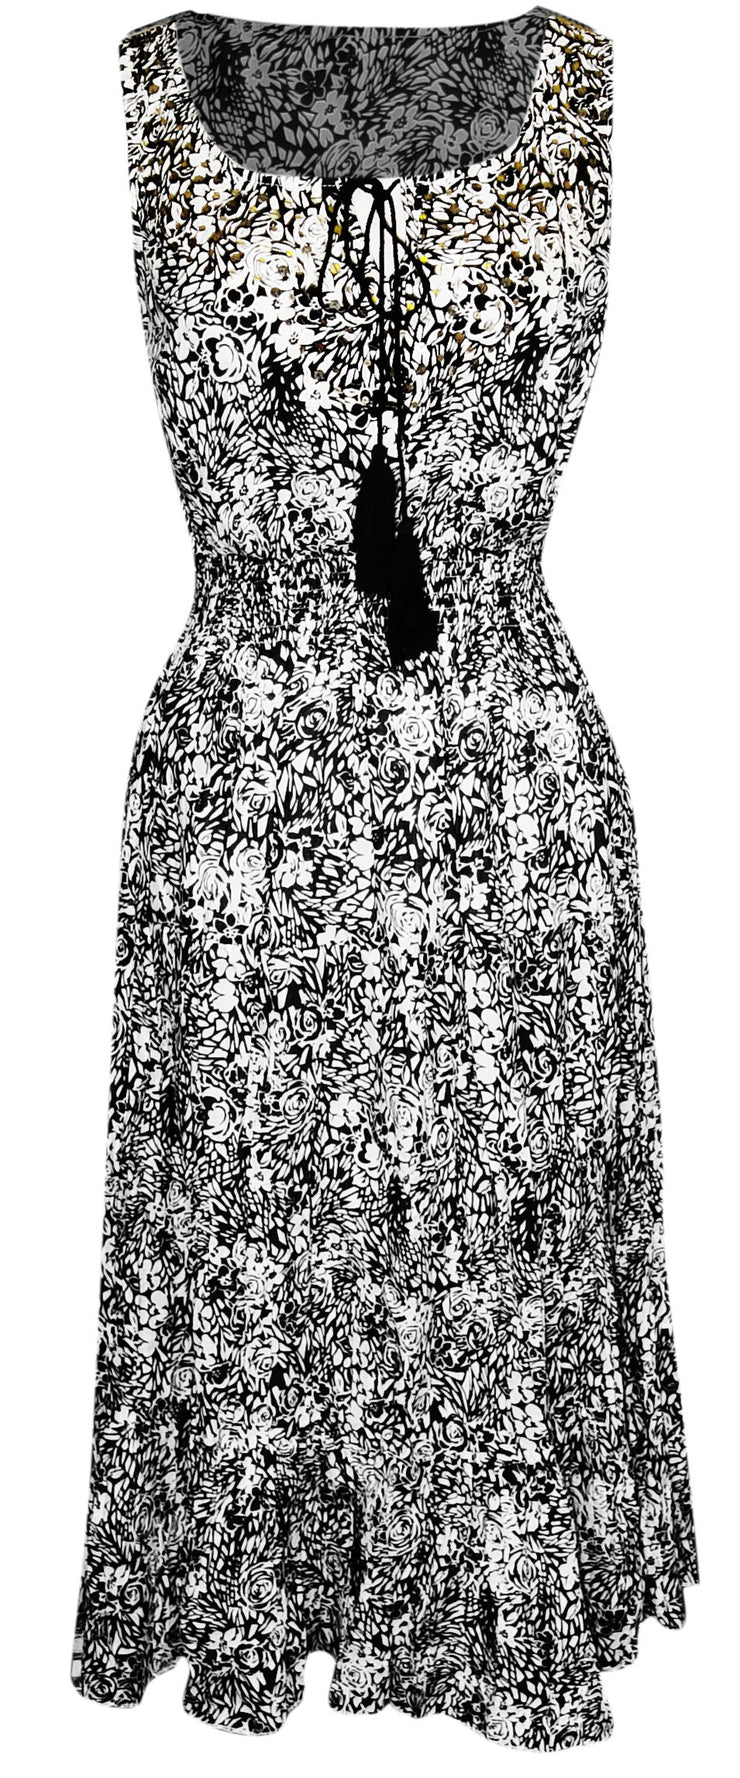 A1571-Floral-Sparkle-Dress-Black-XL-KL